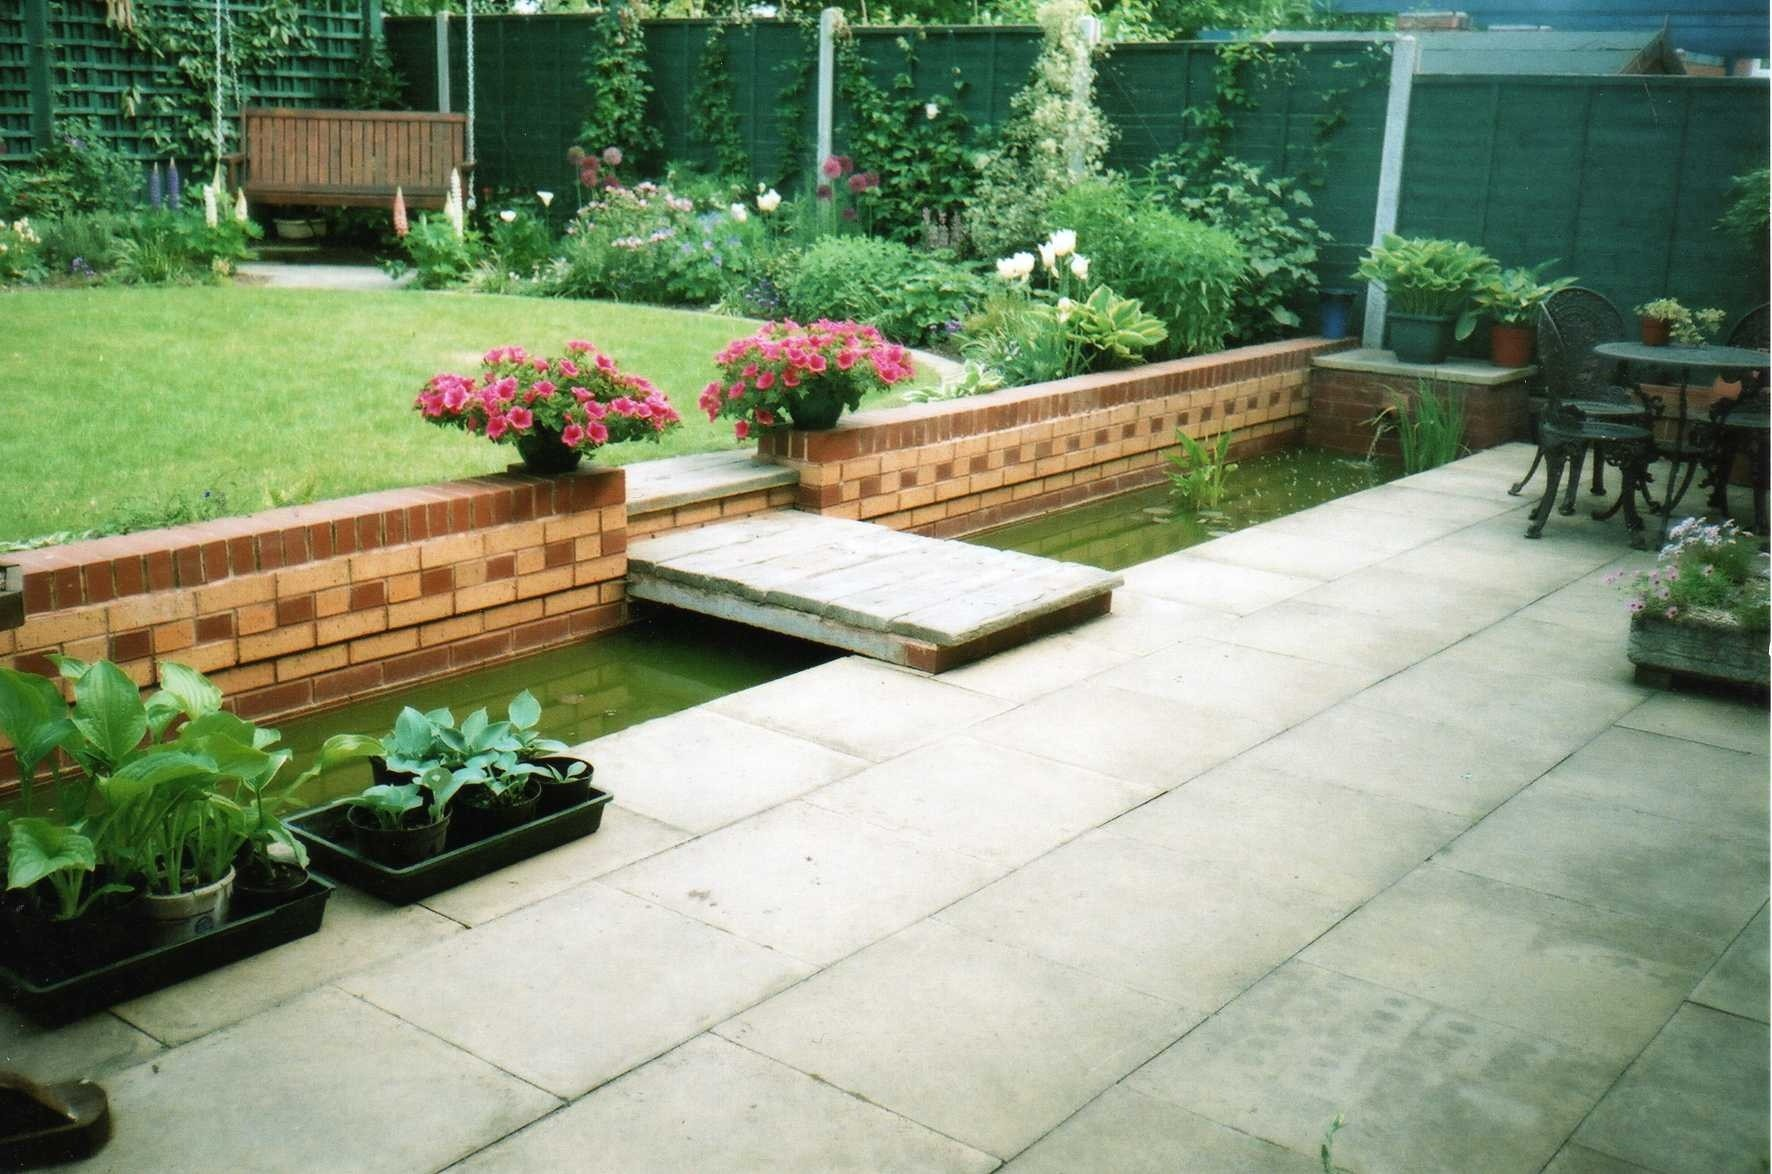 Koi pond specialists parkes quality landscaping services ltd for Koi pond deck